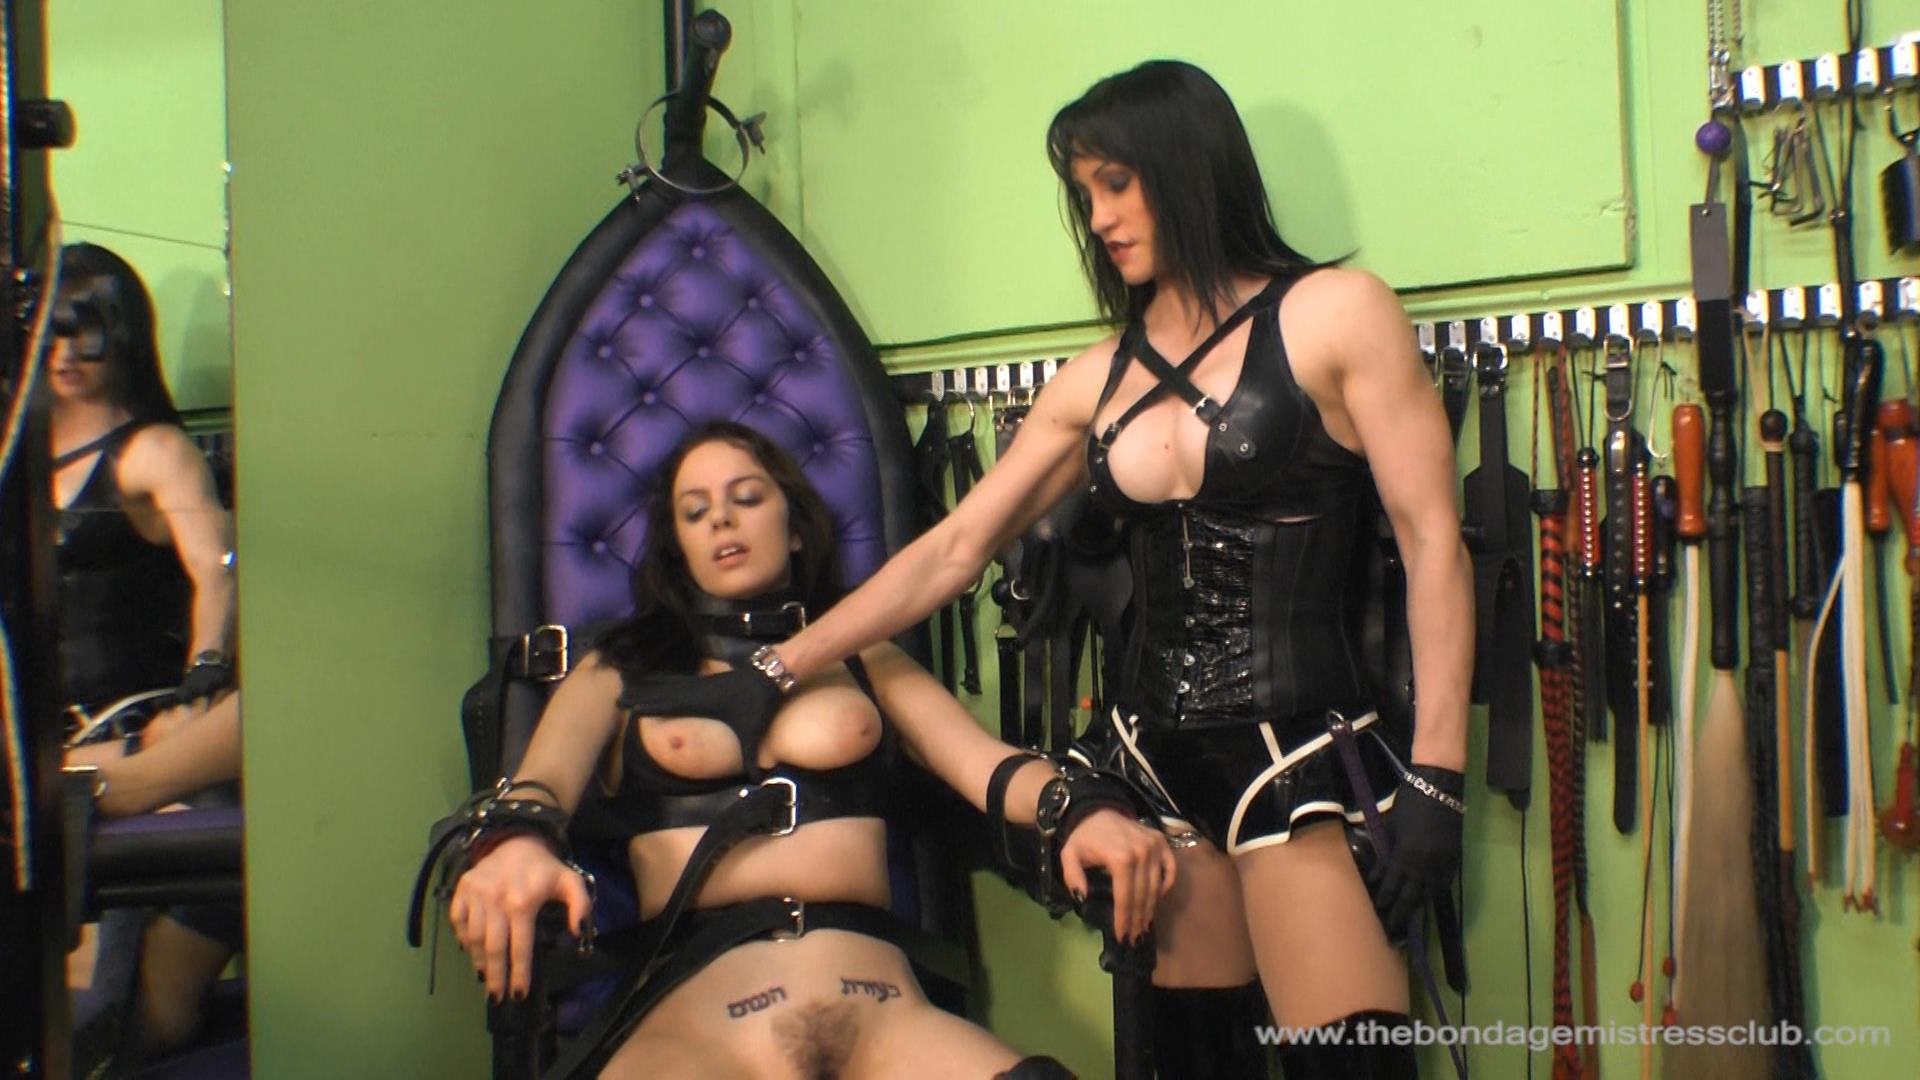 Riding Mistress, Subgirl Beauvoir In Scene: Beauvoir in Pain Slut - THEBONDAGEMISTRESSCLUB - FULL HD/1080p/WMV